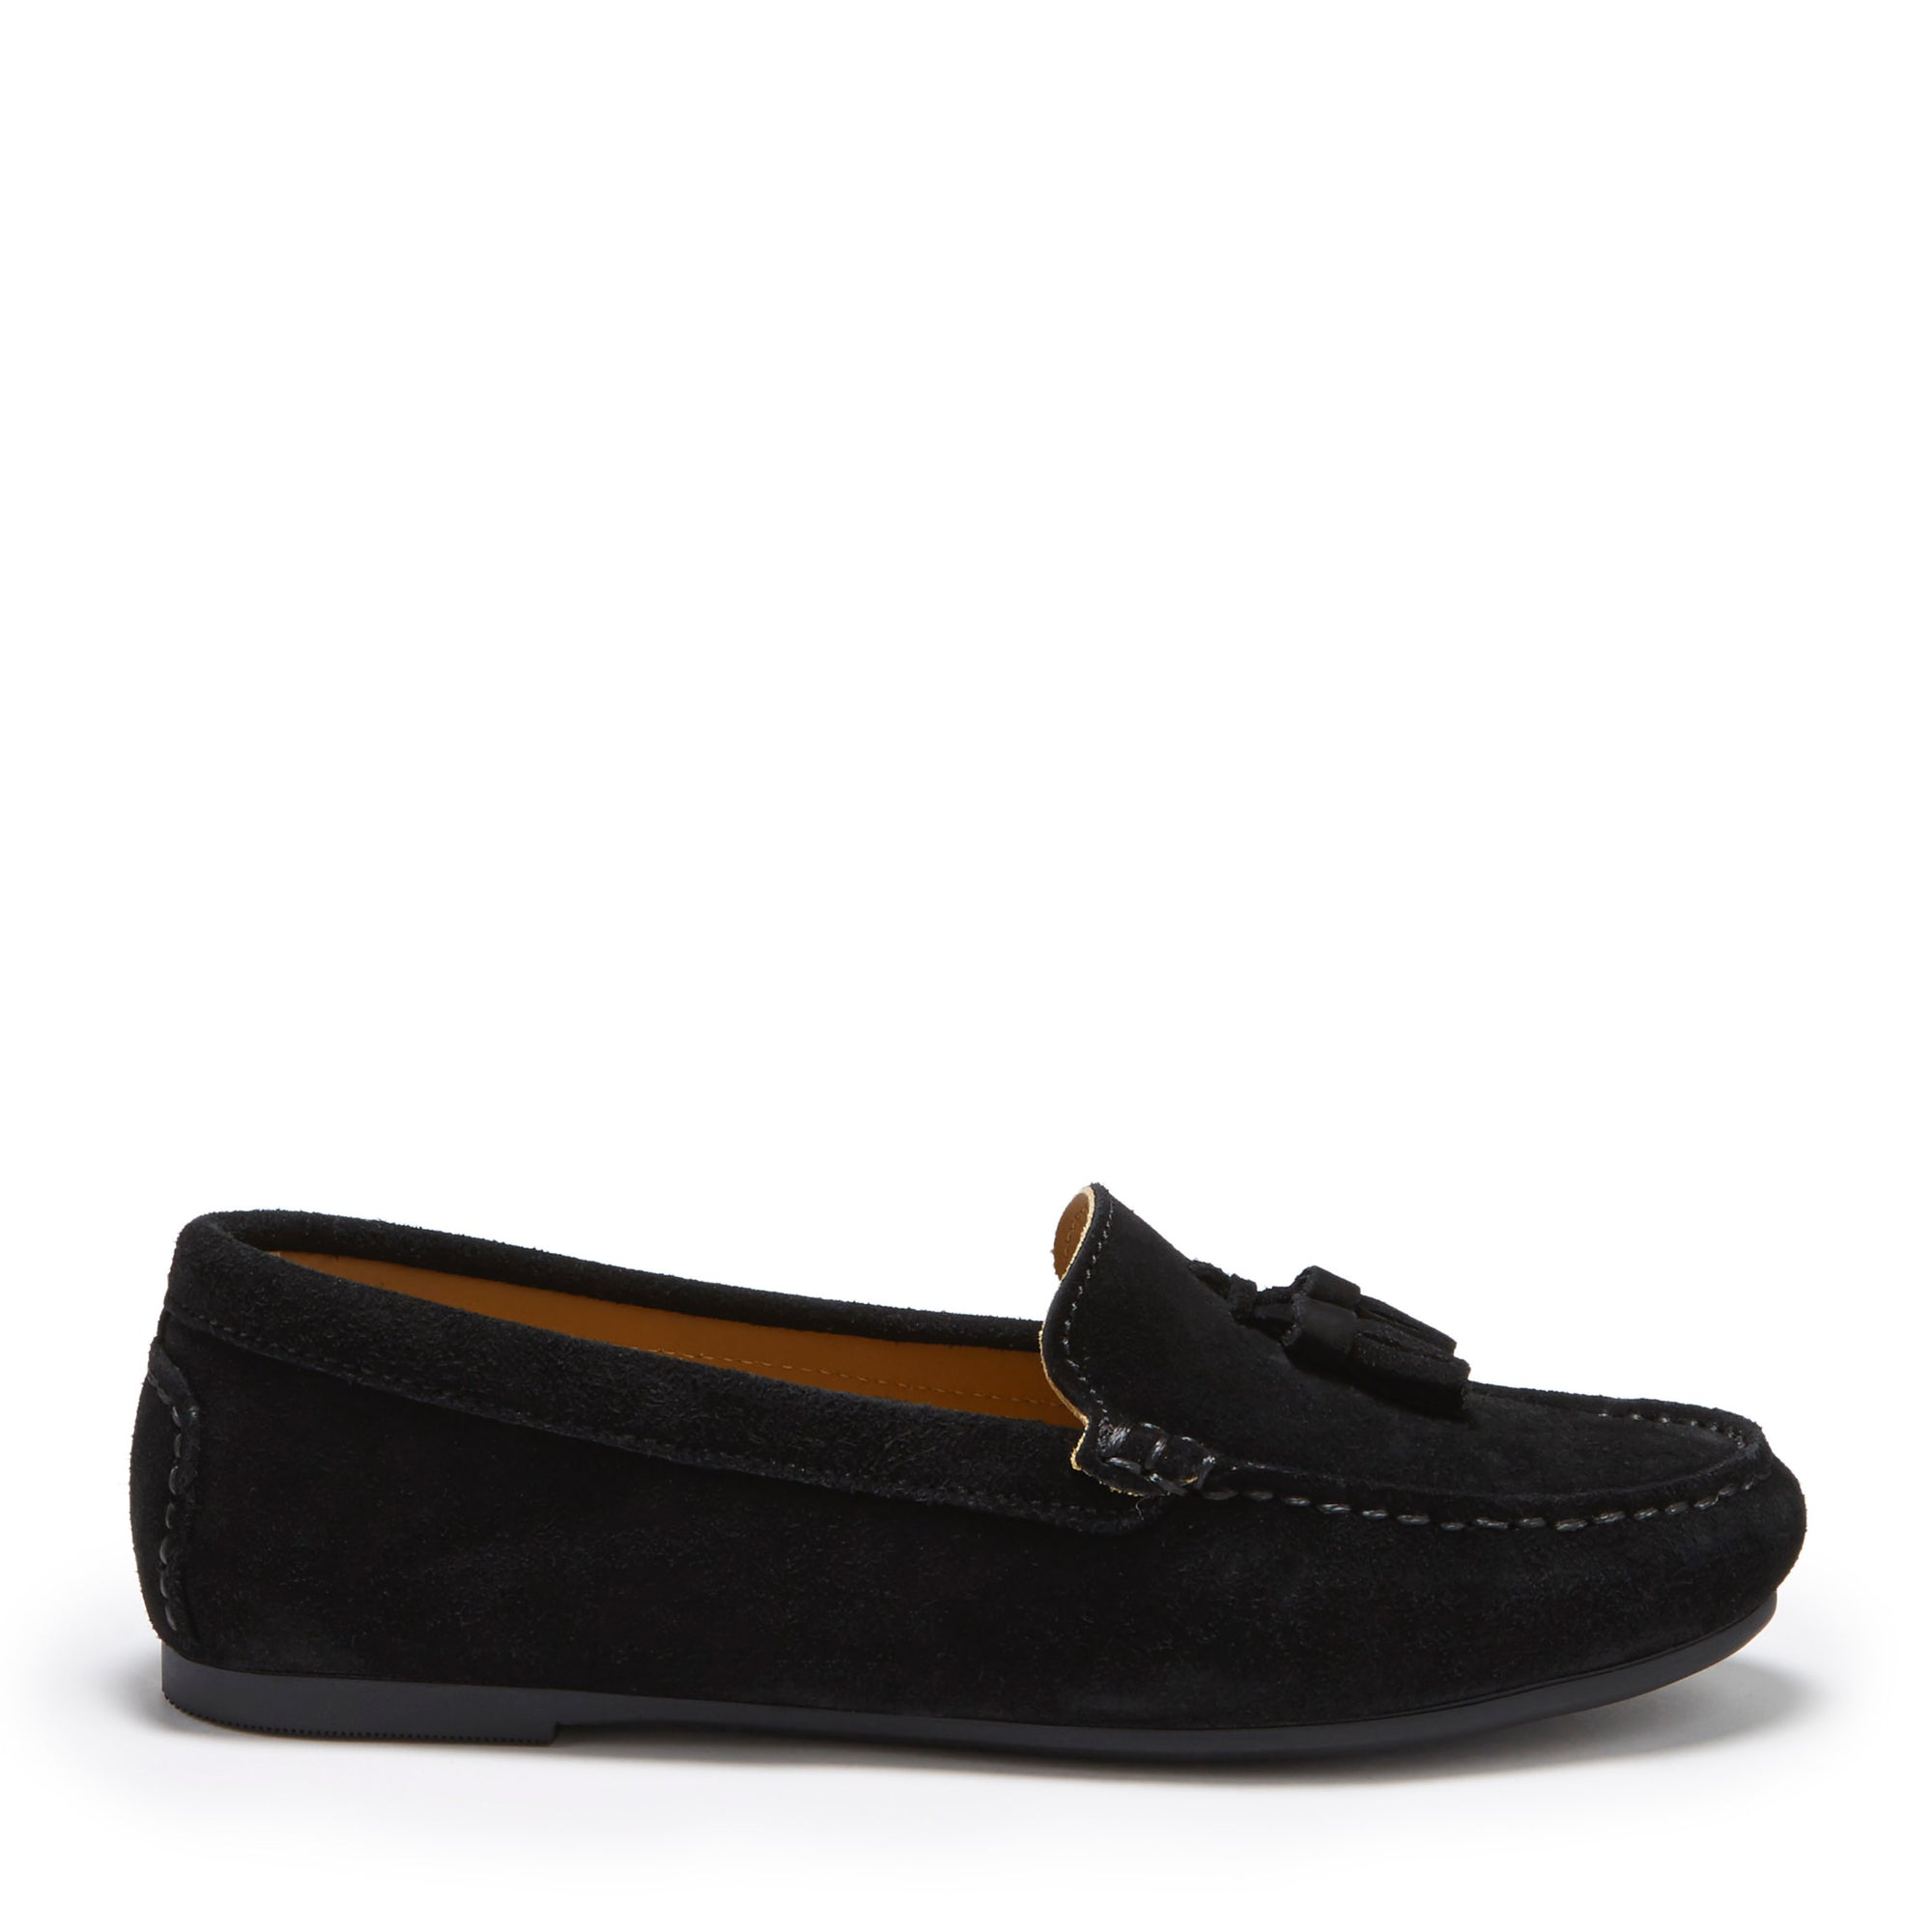 Women's Tasselled Driving Loafers Full Rubber Sole, black suede